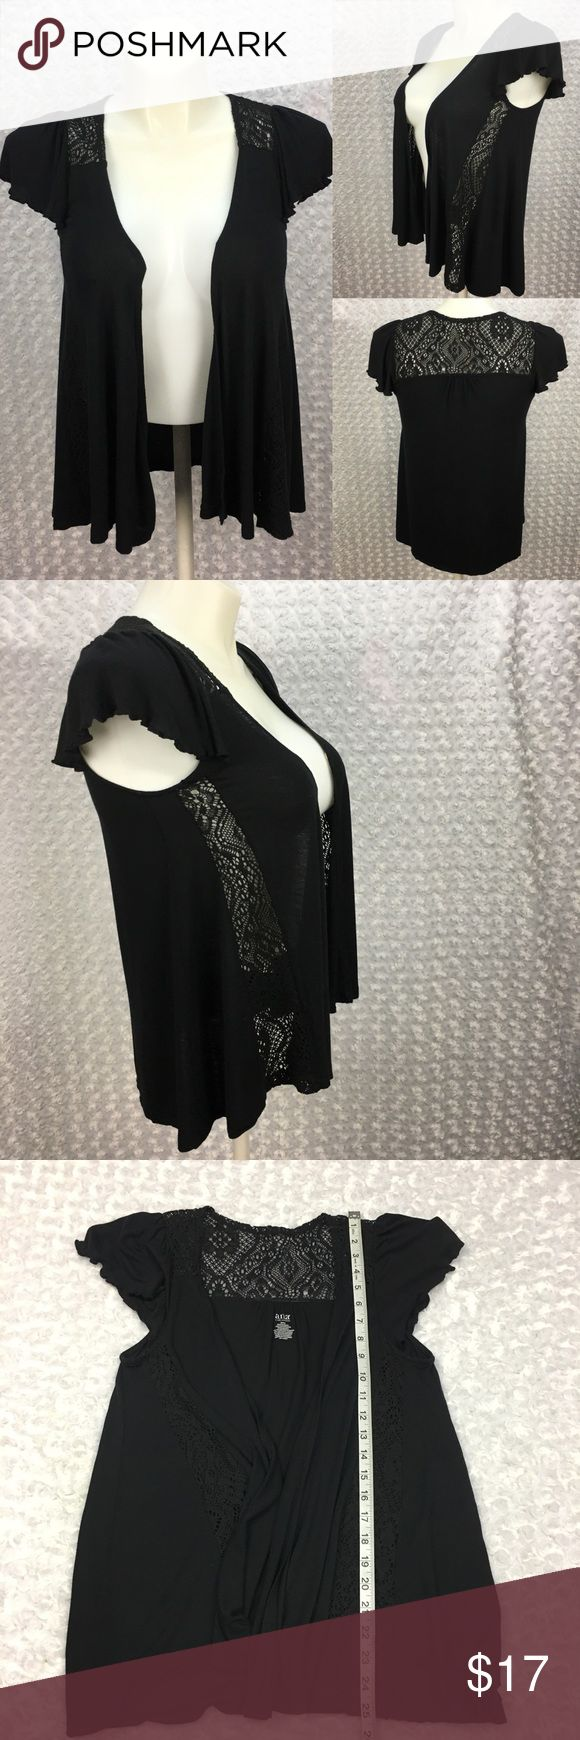 Black Open Front Shortsleeve Shrug Lace Accents Ana a new approach Black Open Front Flowy Shortsleeve Shrug Knitted Lace Accents  Size: Womens Small, SEE PHOTOS FOR MEASUREMENTS  Condition: There is very light piling in areas from light wear/washing. SEE PHOTOS  * This listing is for ONE (1) Top *   * See photos for measurements and more details *  Please note: Color may vary slightly due to display screen calibrations.  [A-19] Ana a New Approach Sweaters Shrugs & Ponchos